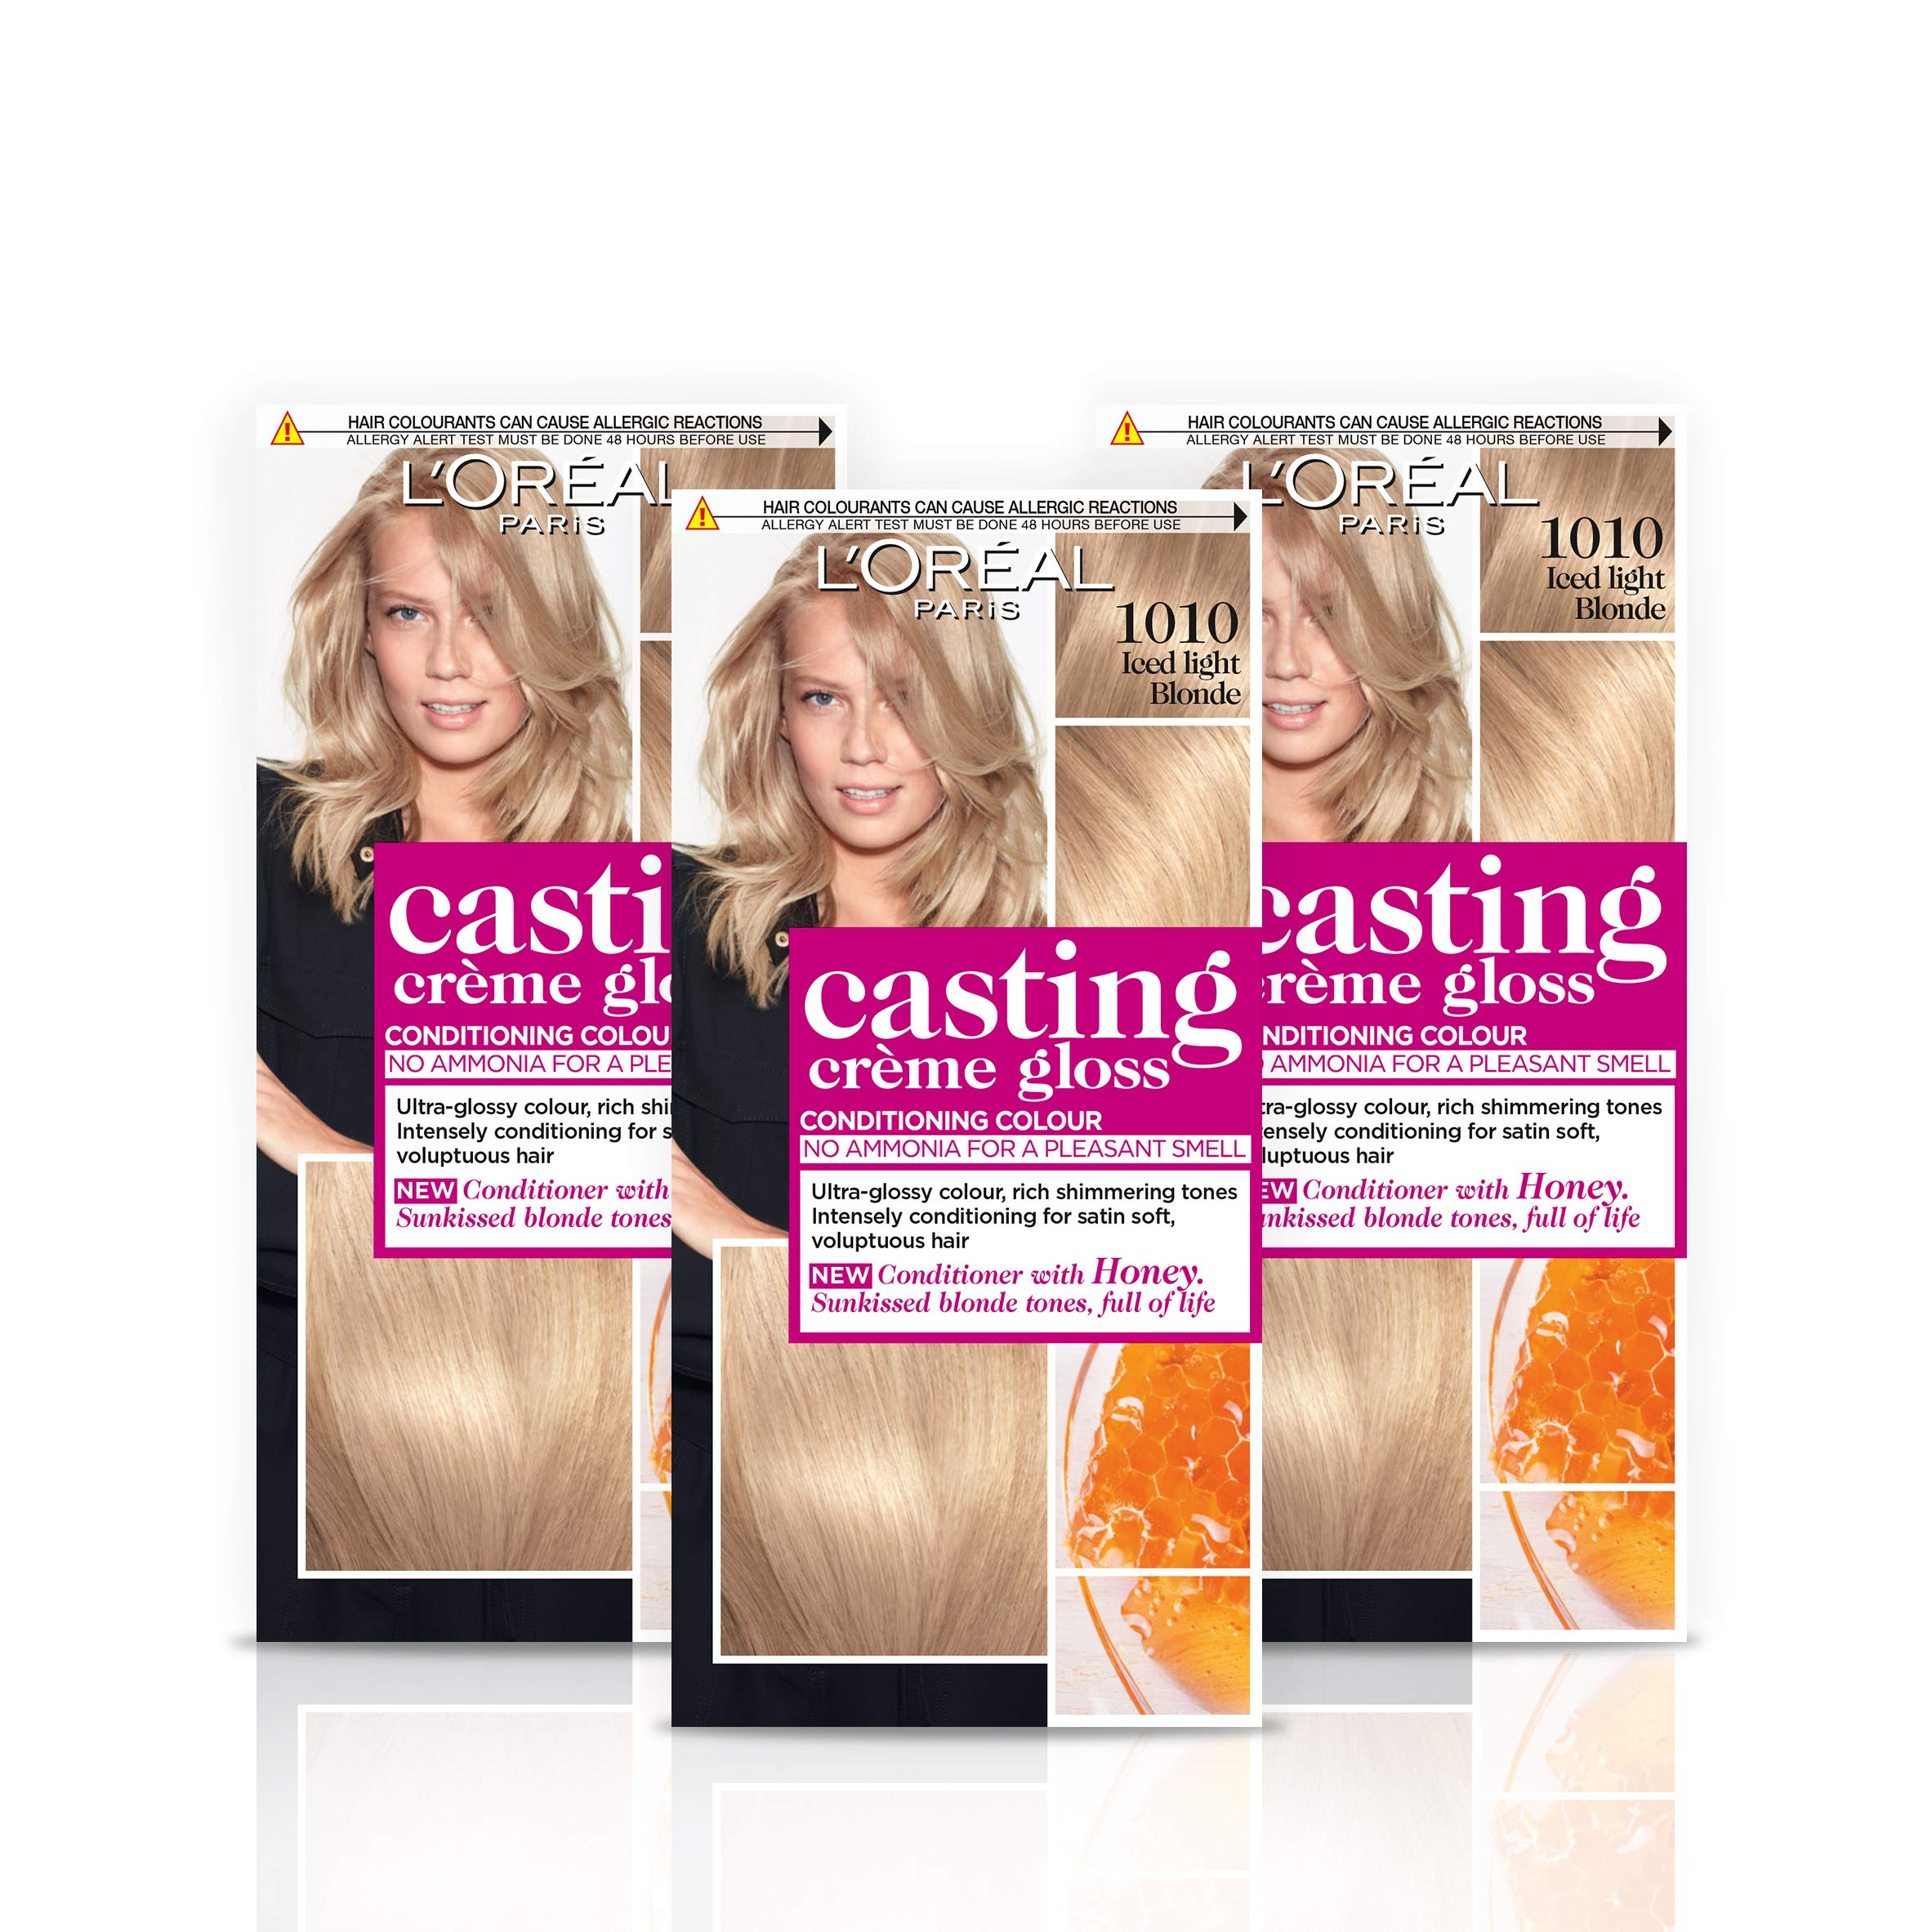 L'Oréal Paris Casting Crème Gloss Semi-Permanent Hair Dye, Ammonia-Free Formula & Honey-Infused Conditioner, Glossy Finish, Colour for Up to 28 Shampoos, Pack of 3, Colour: 1010 Light Iced Blonde